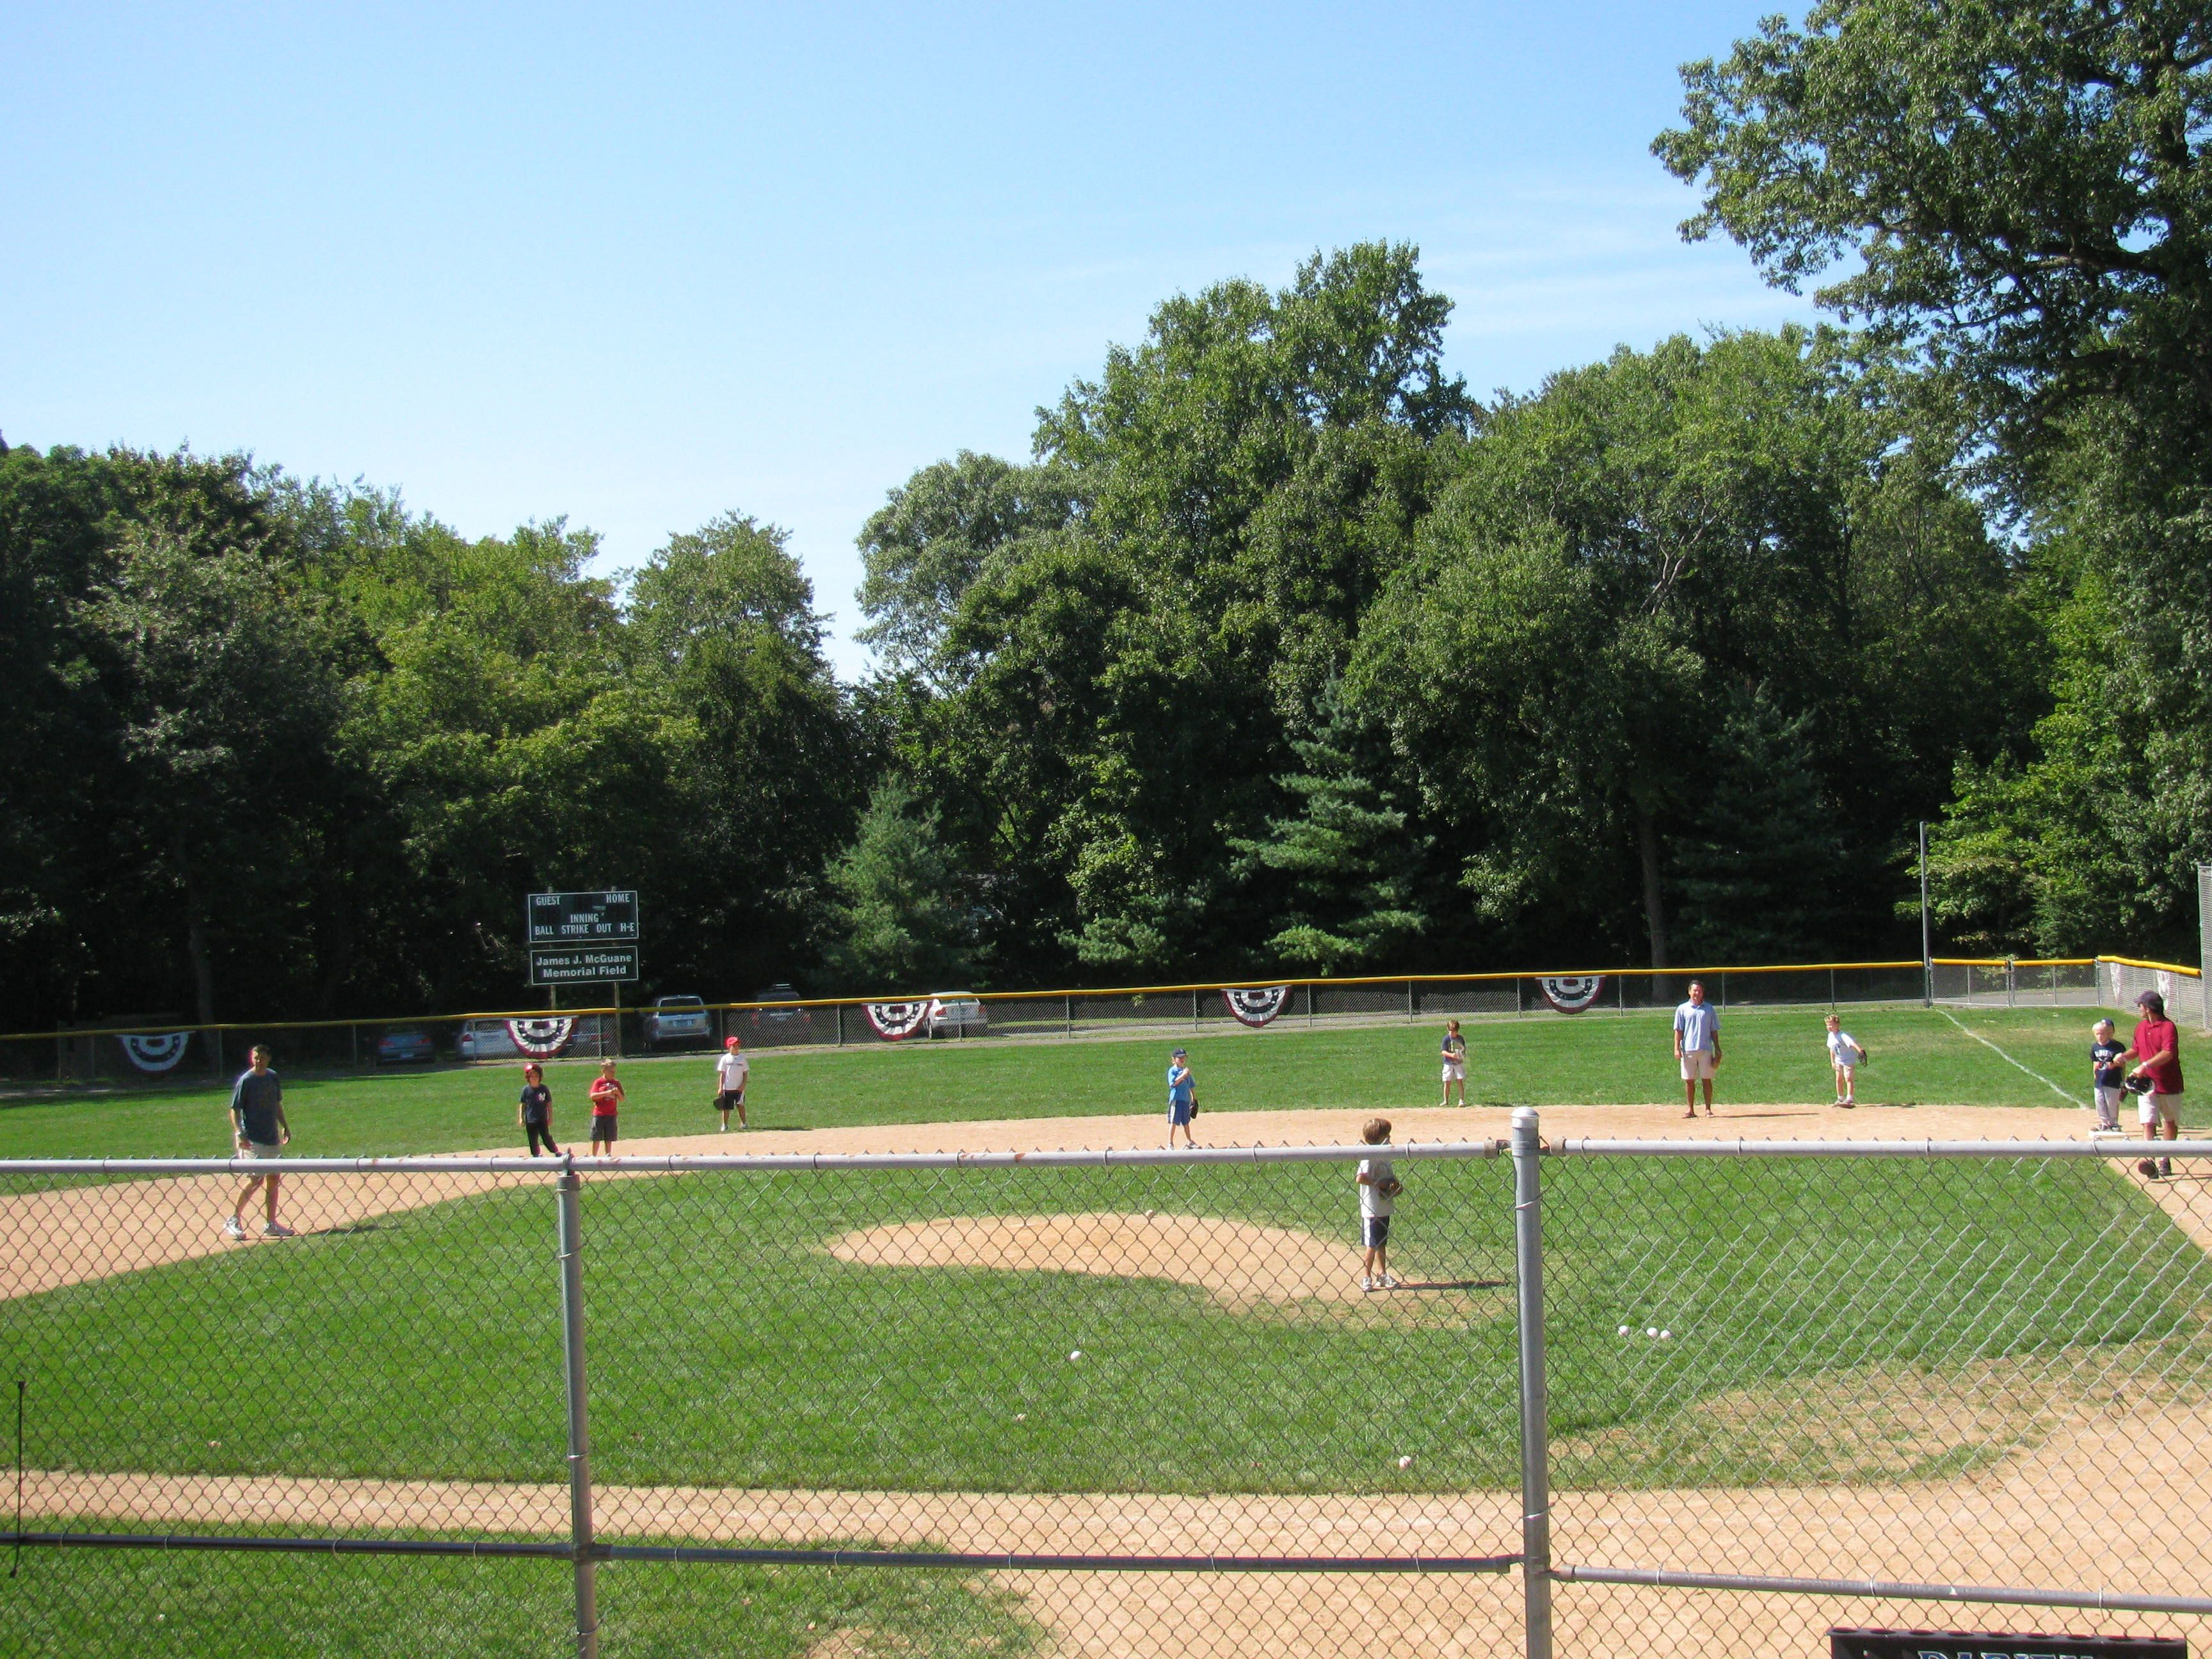 Mcguane Baseball Field Darien Ct Where Little League Happens Photography Via Janine Vairo Realtor Houlihan Lawrence Darien York City New York City